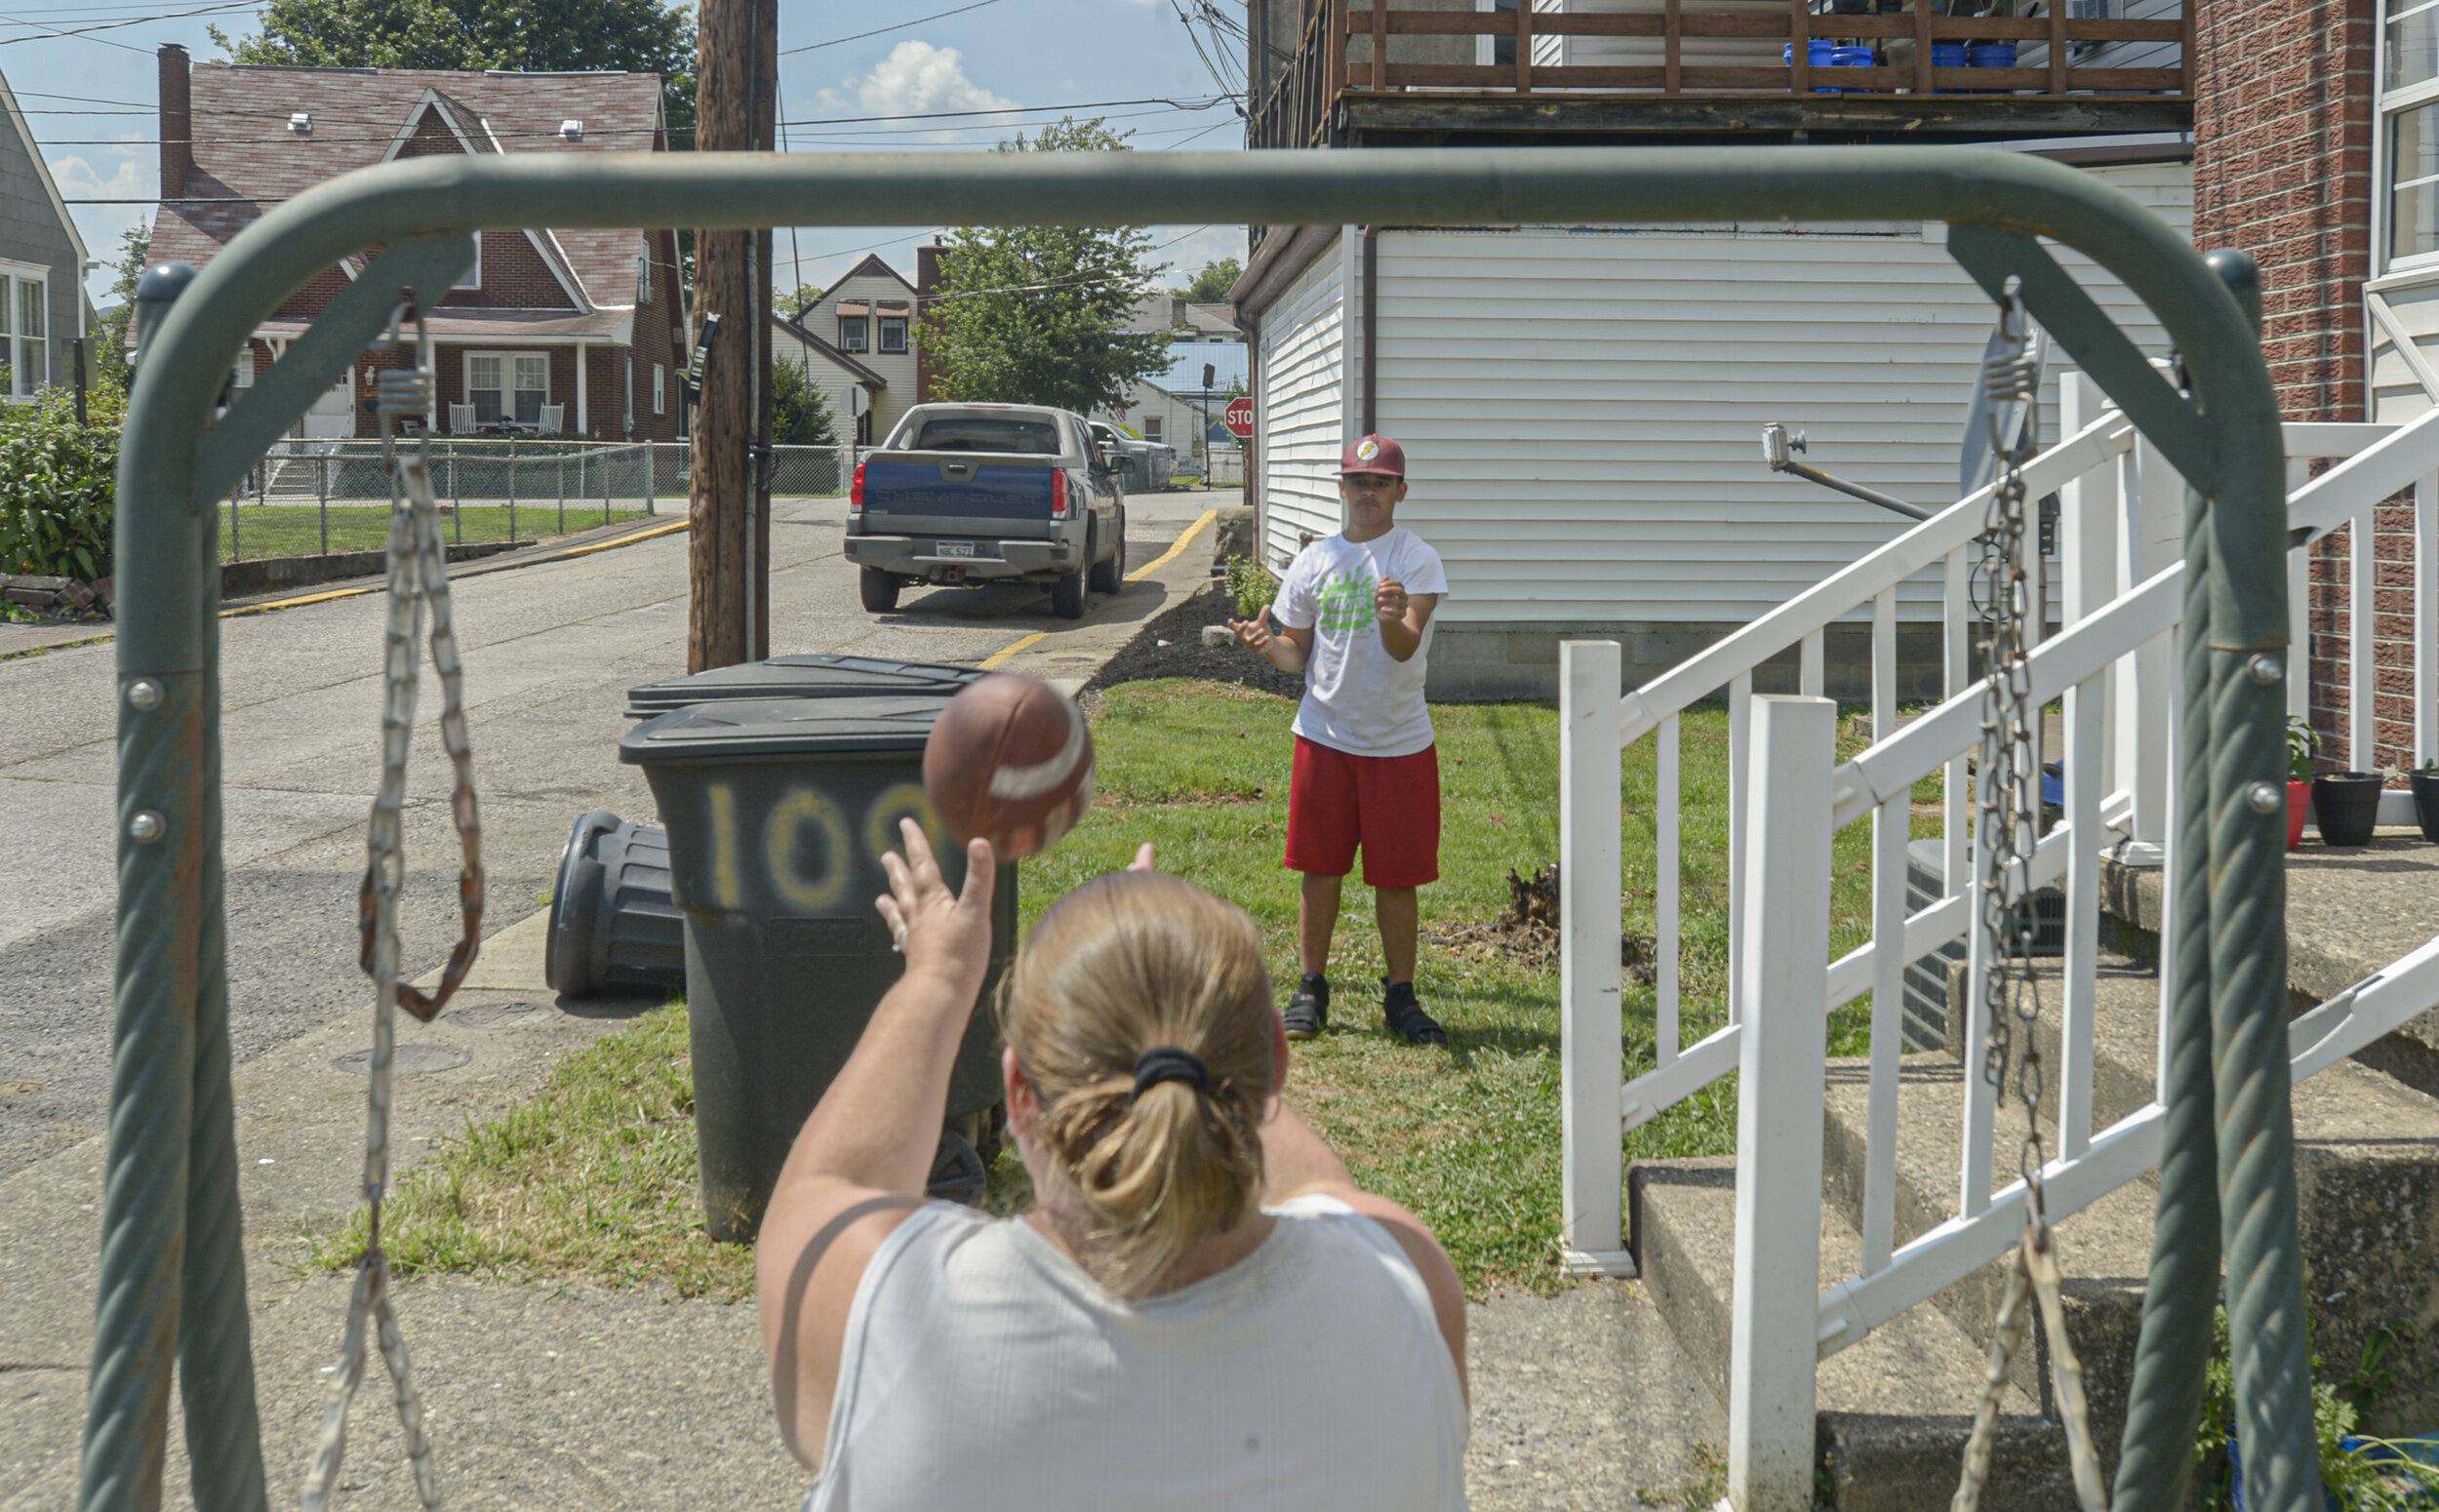 "Jessica Smith, foreground, tosses a football with her son, William Smith, outside the family home in Belle on July 9, 2020. Smith said her son ""seems like he's never full"" this summer as the family struggles to access food during the COVID-19 pandemic. Photo by F. Brian Ferguson"